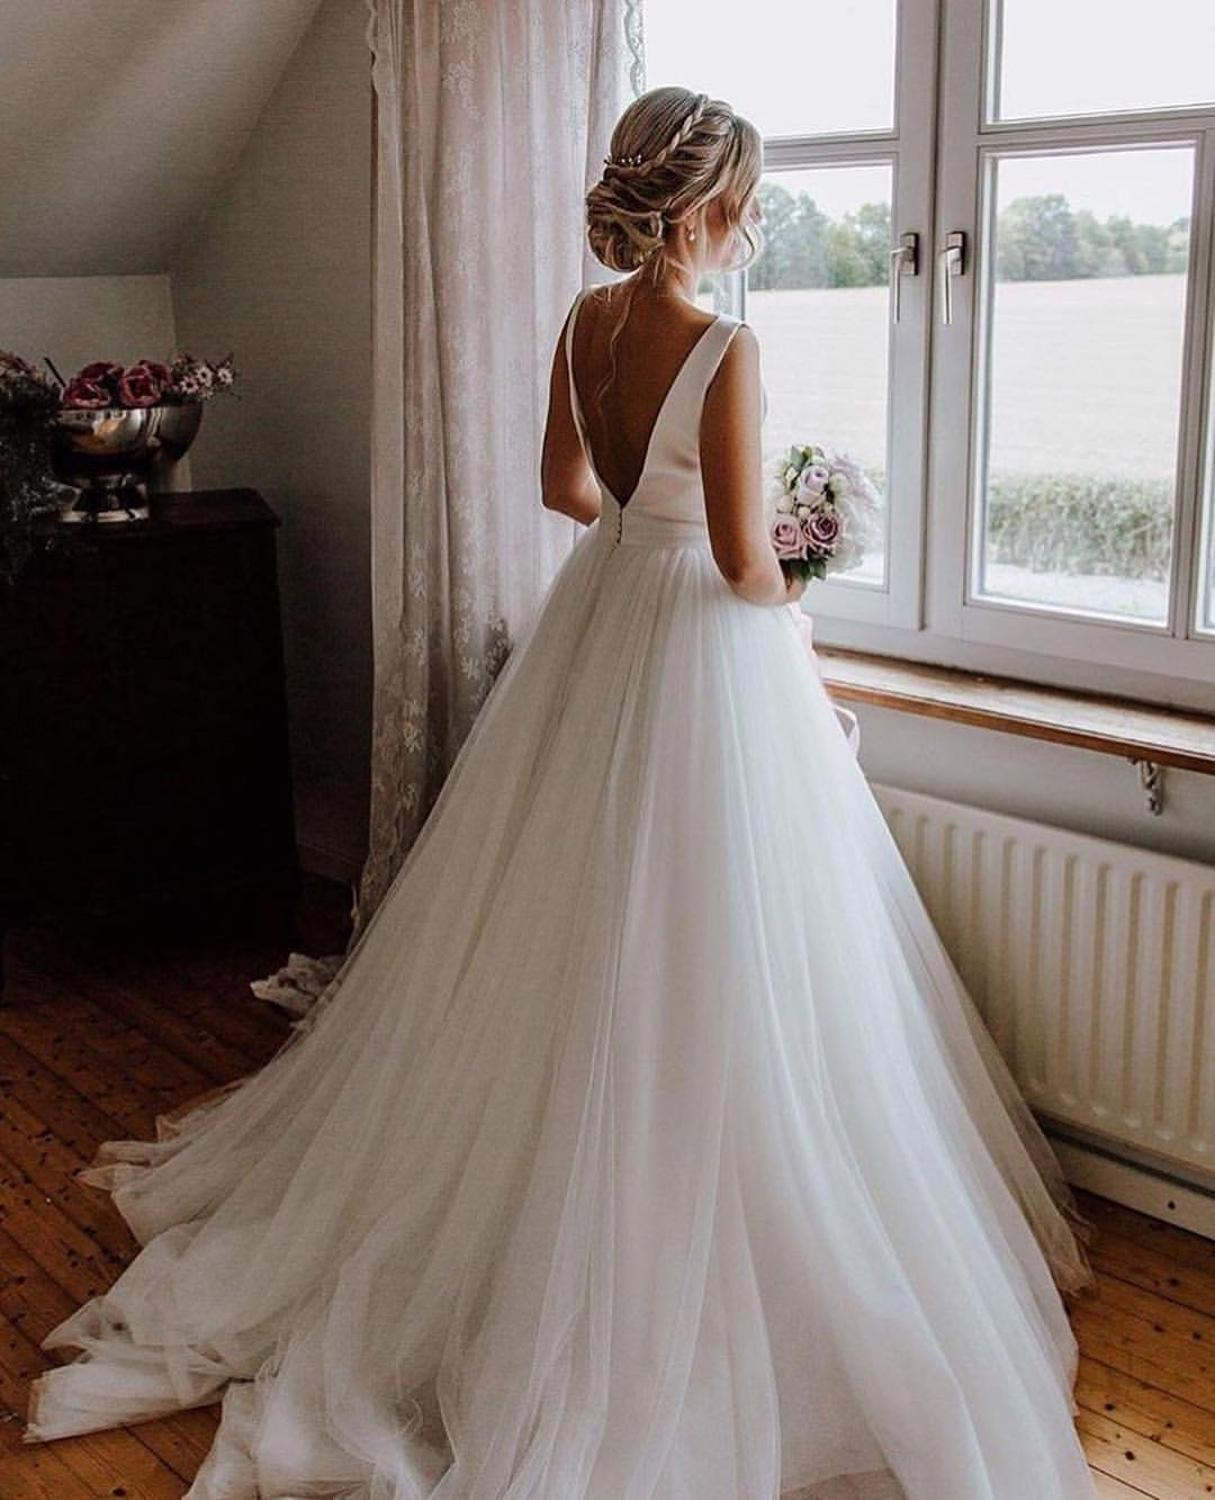 Cheap Simple A Line Wedding Dresses Plus Size 2019 Backless Buttons Back Tulle Bow White Ivory Bridal Wedding Gowns For Bride